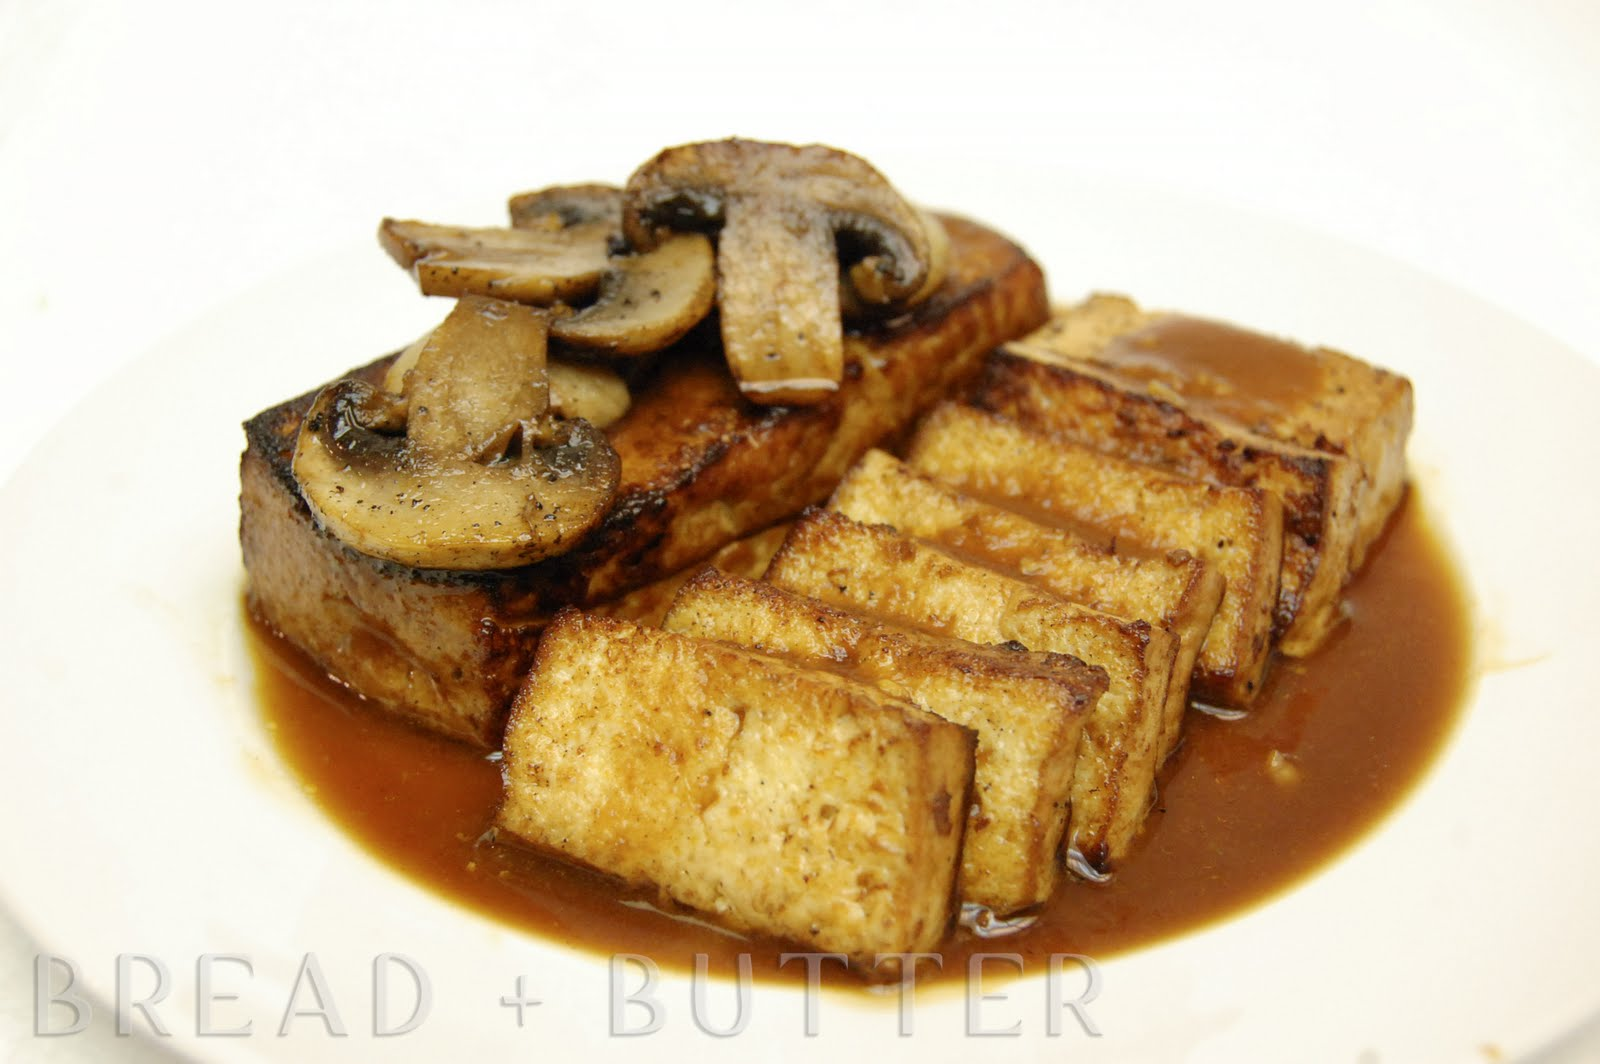 Bread + Butter: Pan-Fried Tofu